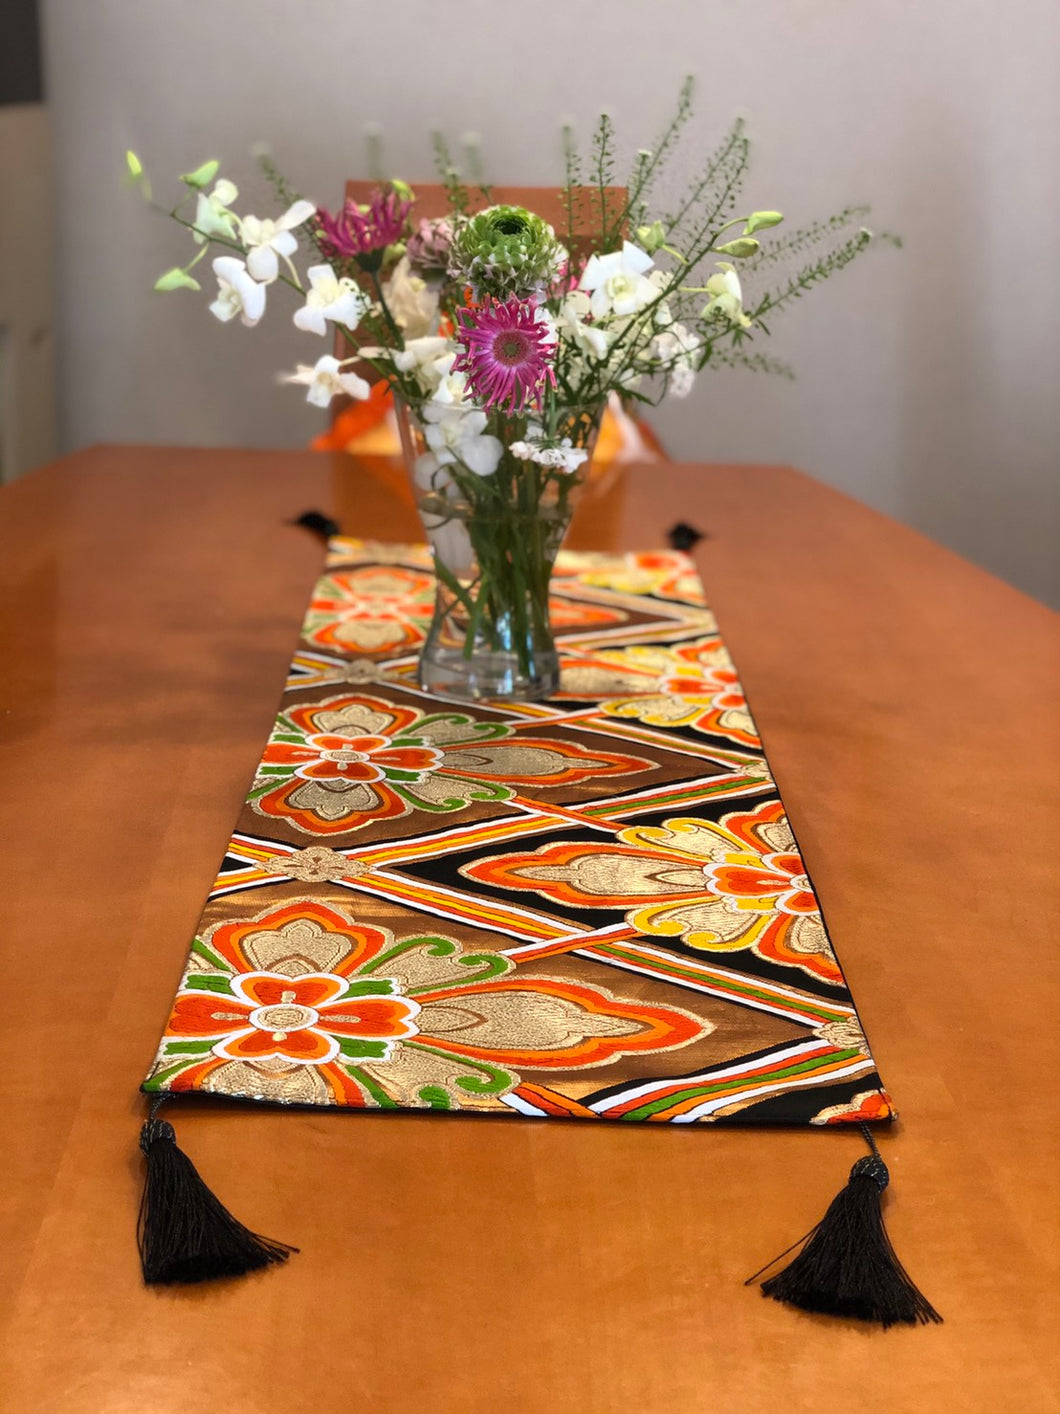 Table Runner in gold on black Hanabishi motif with black tassels.